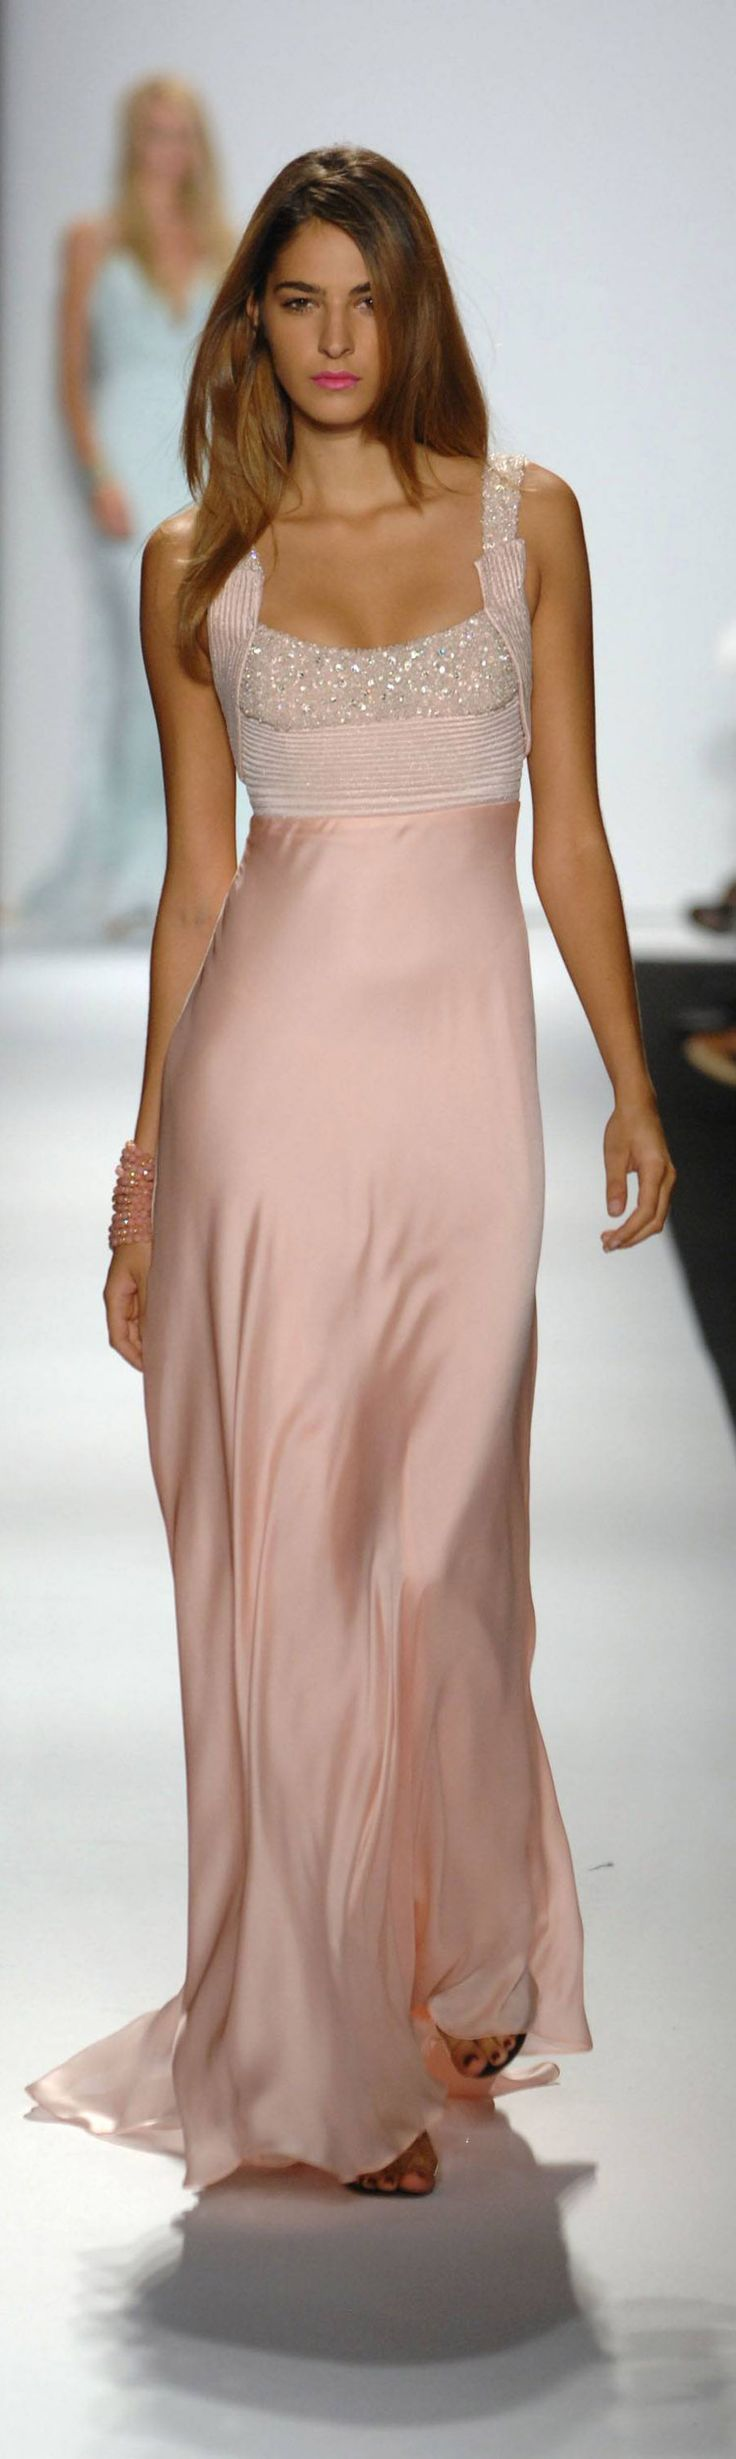 Badgley MischkaEvening Dresses, Fashion, Style, Bridesmaid Dresses, Pale Pink, Bridesmaid Gowns, Badgley Mischka, Pink Gowns, Badgleymischka